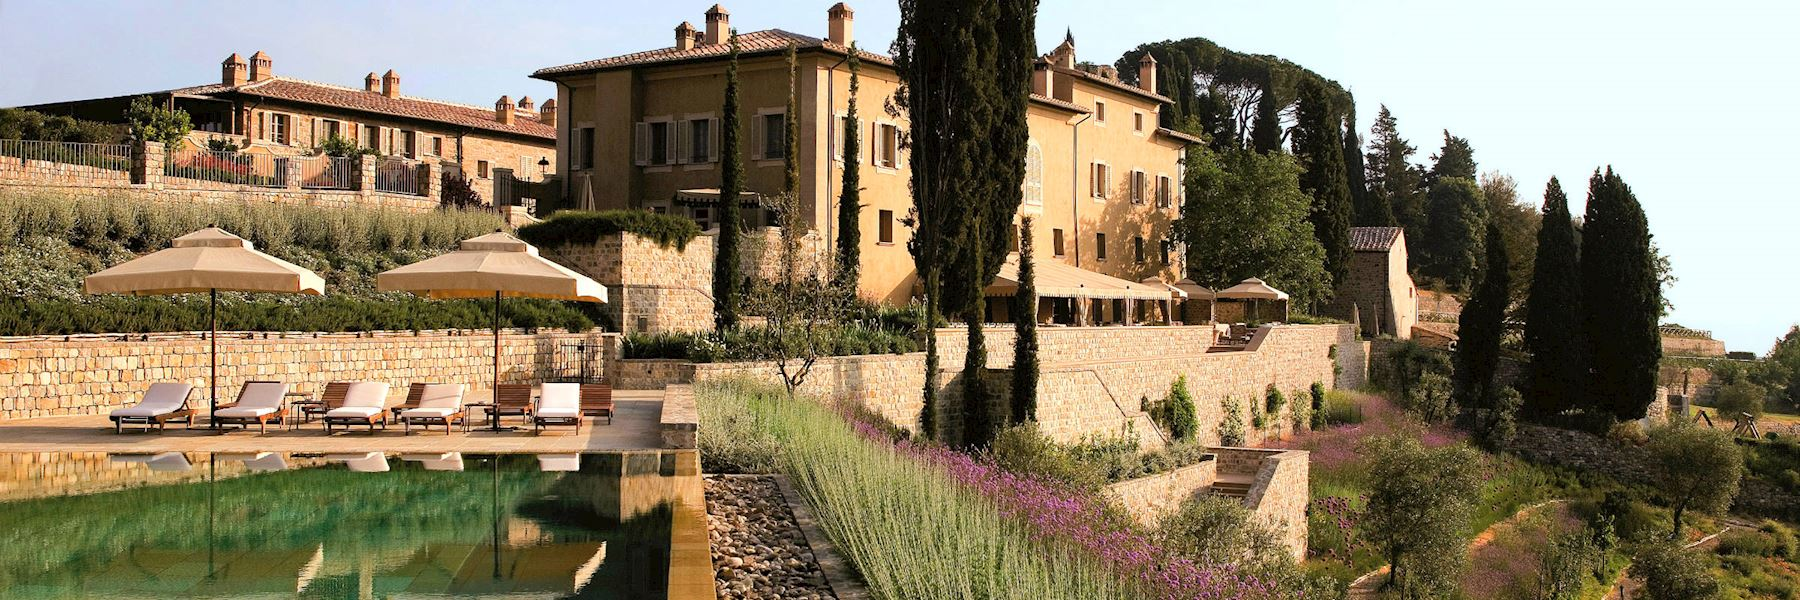 Accommodation in Italy